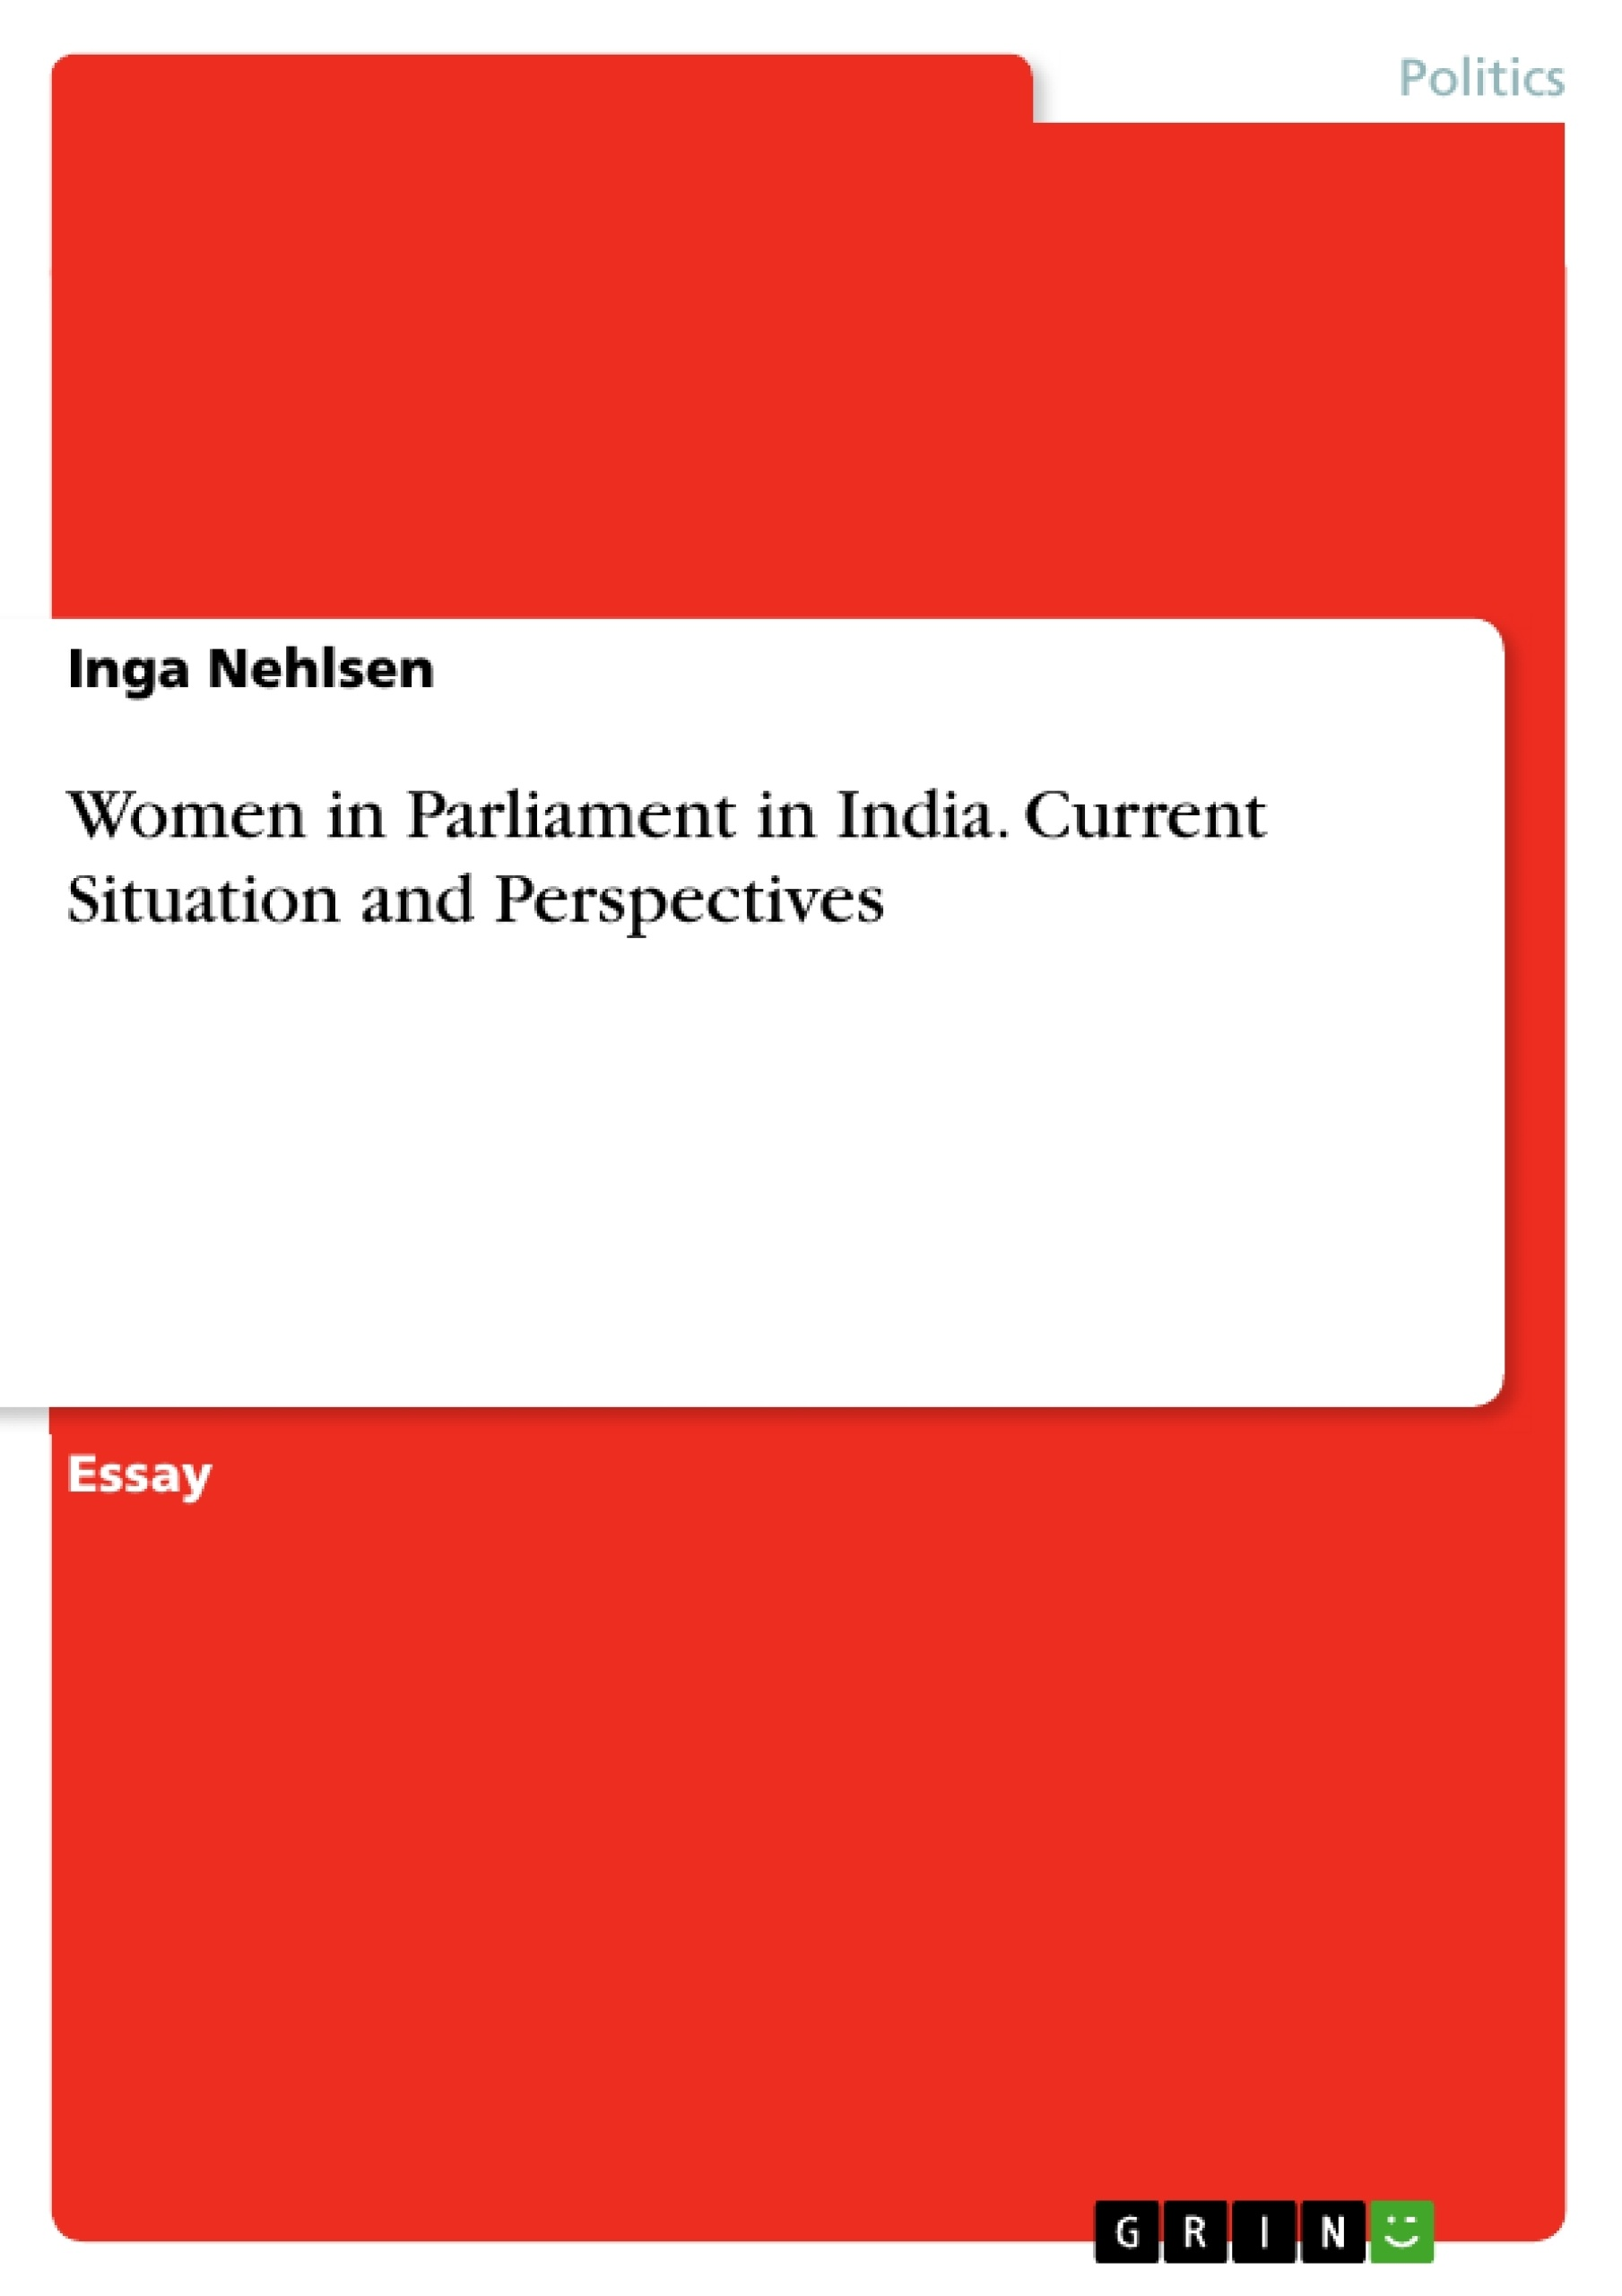 Title: Women in Parliament in India. Current Situation and Perspectives